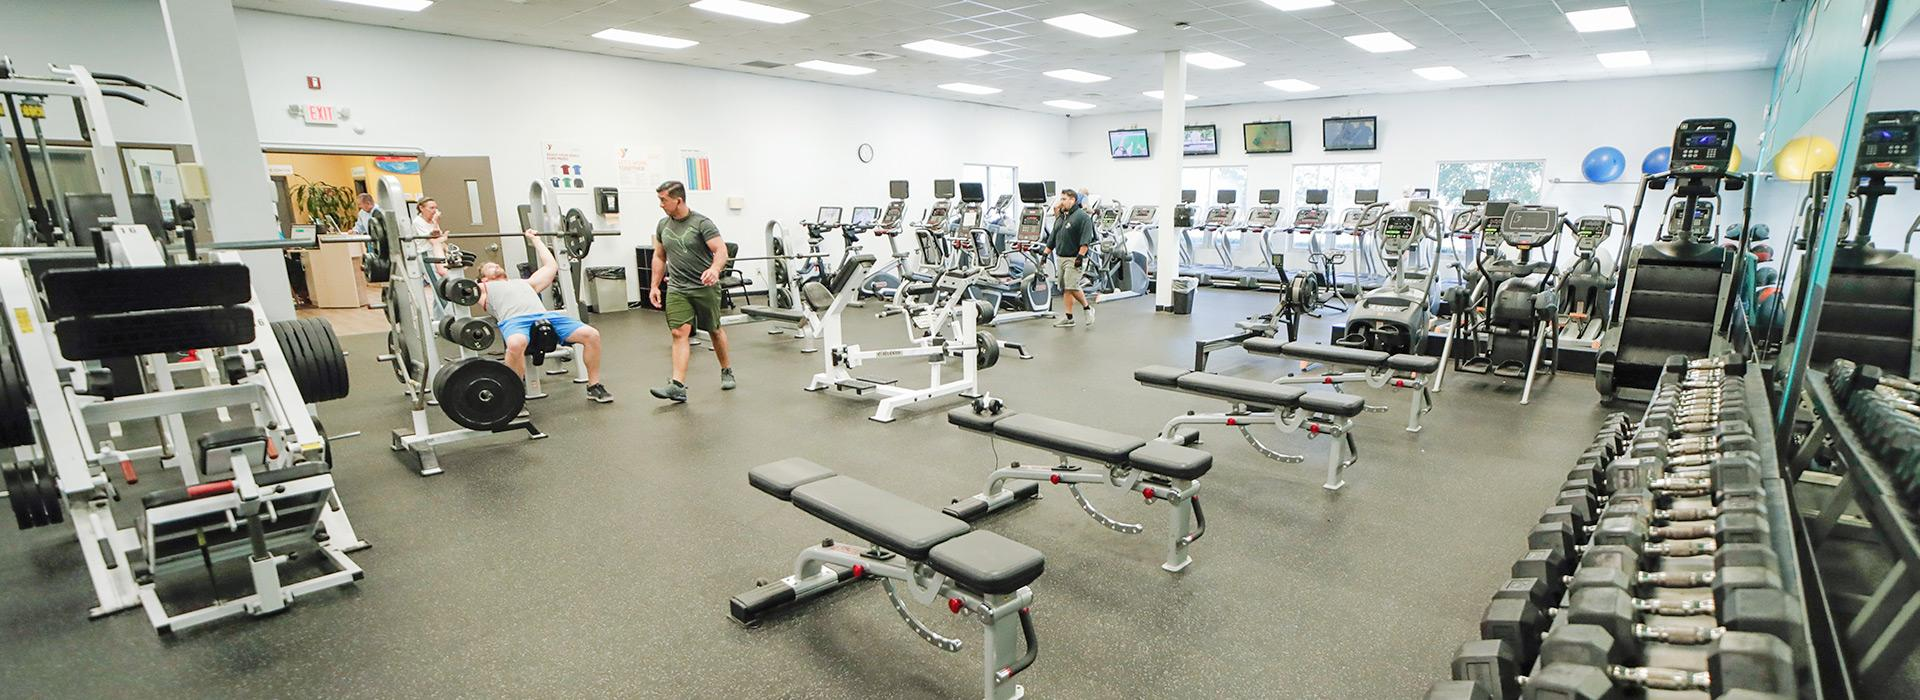 Weight room of Hilltop Family YMCA